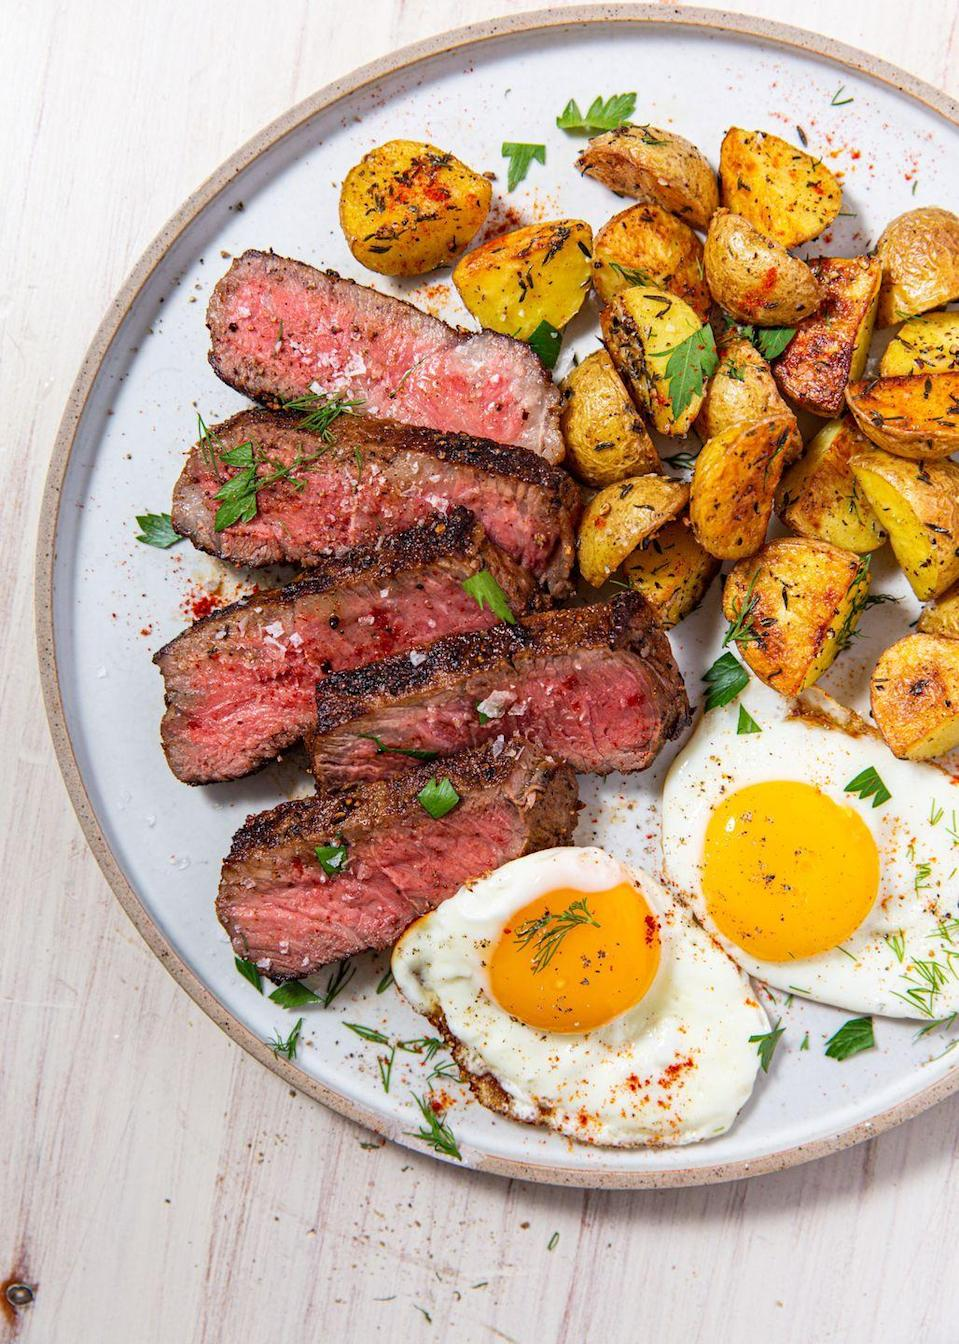 """<p>Name a better duo. We'll wait. </p><p>Get the recipe from <a href=""""https://www.delish.com/cooking/recipe-ideas/a30433895/steak-and-eggs-recipe/"""" rel=""""nofollow noopener"""" target=""""_blank"""" data-ylk=""""slk:Delish"""" class=""""link rapid-noclick-resp"""">Delish</a>. </p>"""